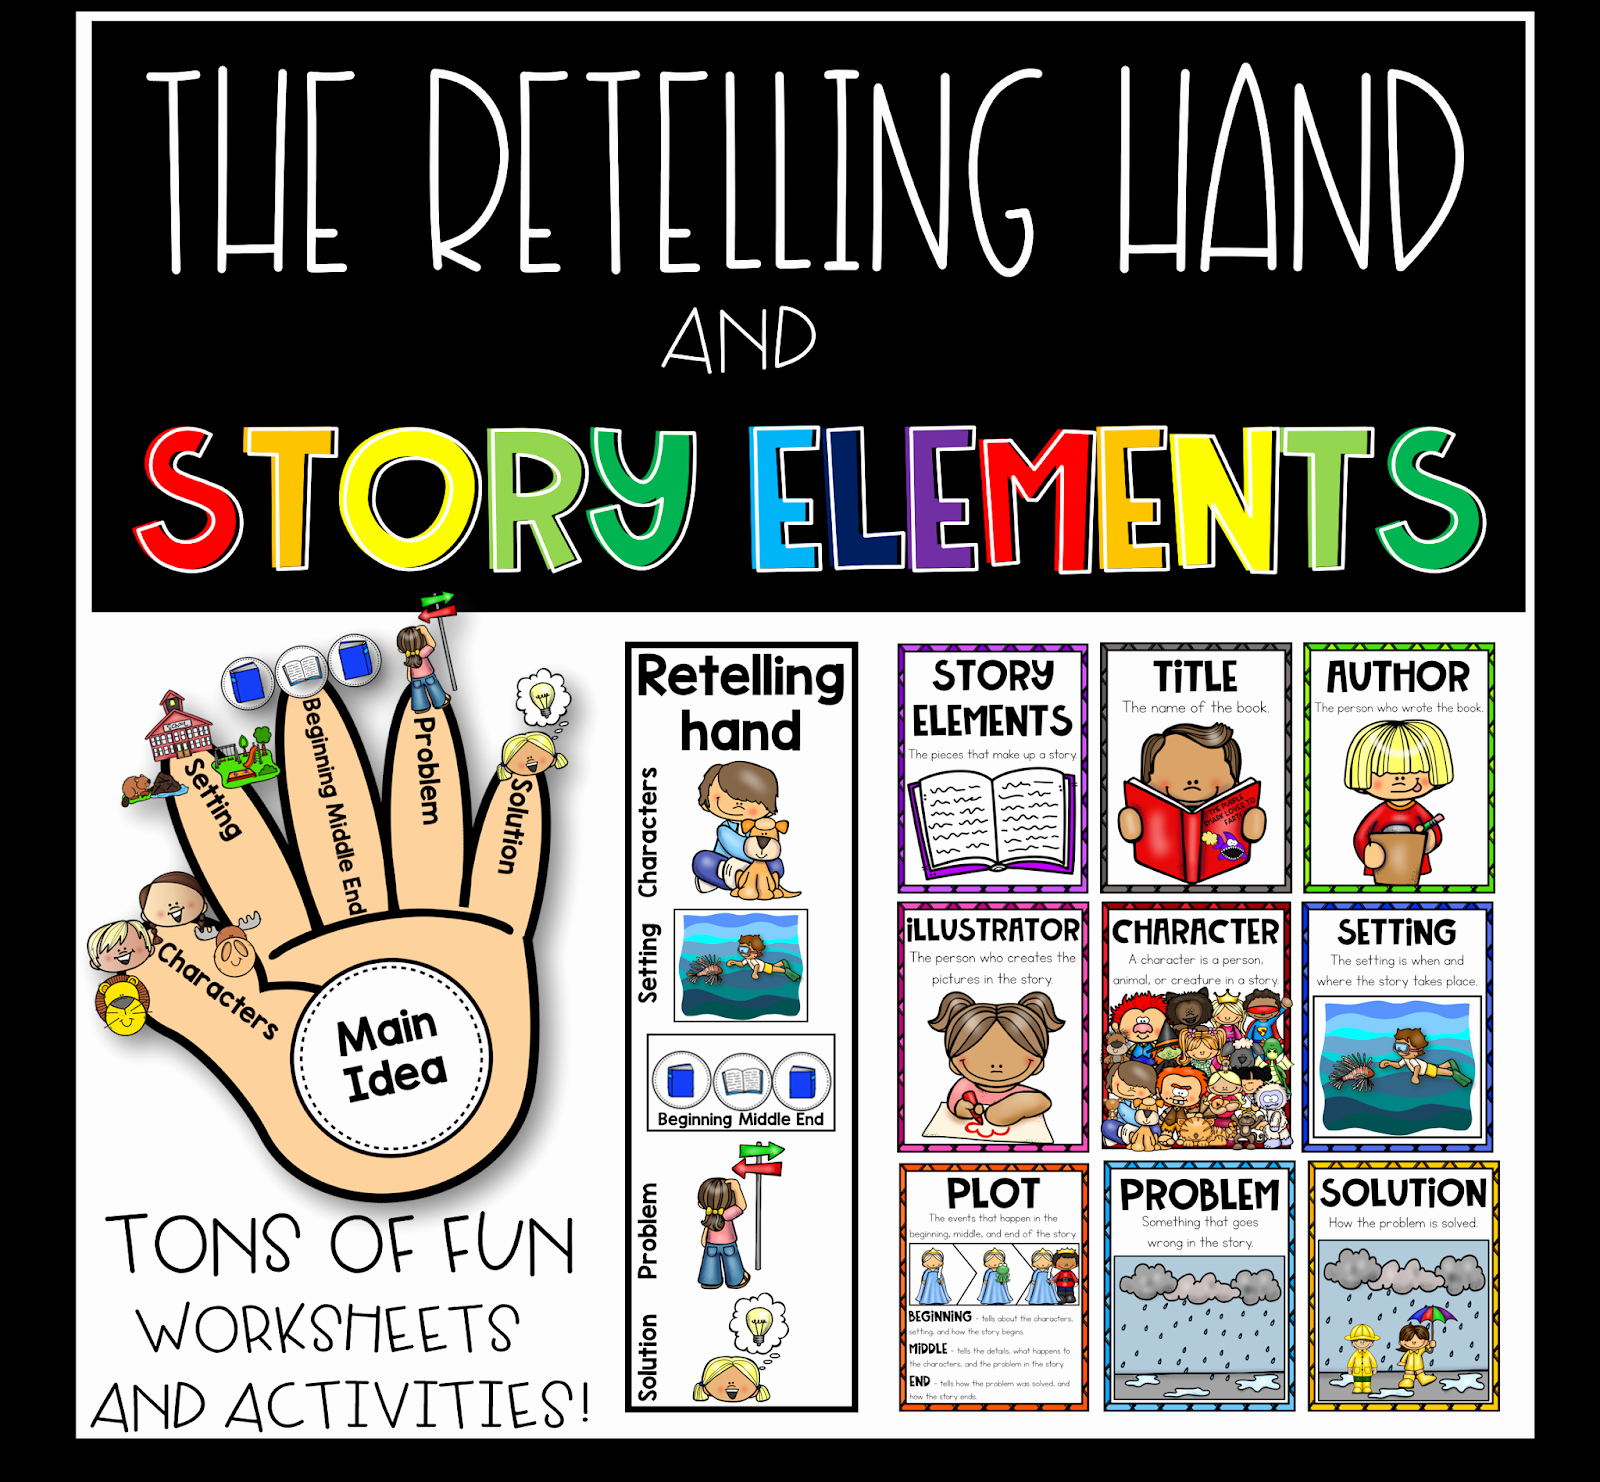 Story Elements Worksheets 2nd Grade Inspirational Simply Delightful In 2nd Grade the Retelling Hand Story